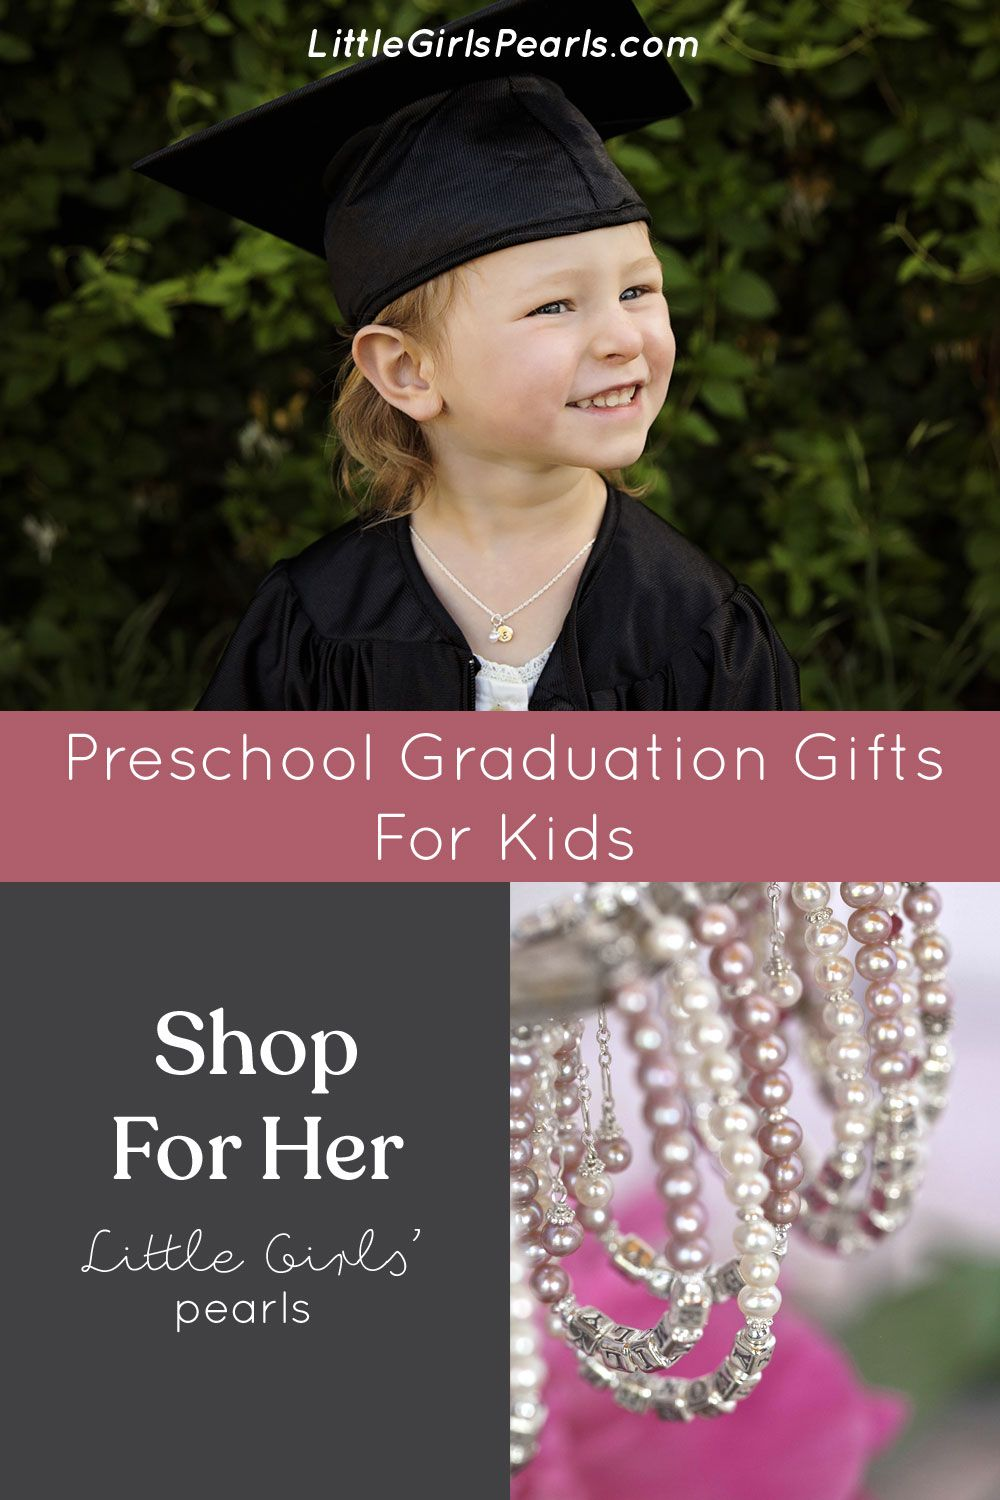 Find your little preschool graduate a gift that will help